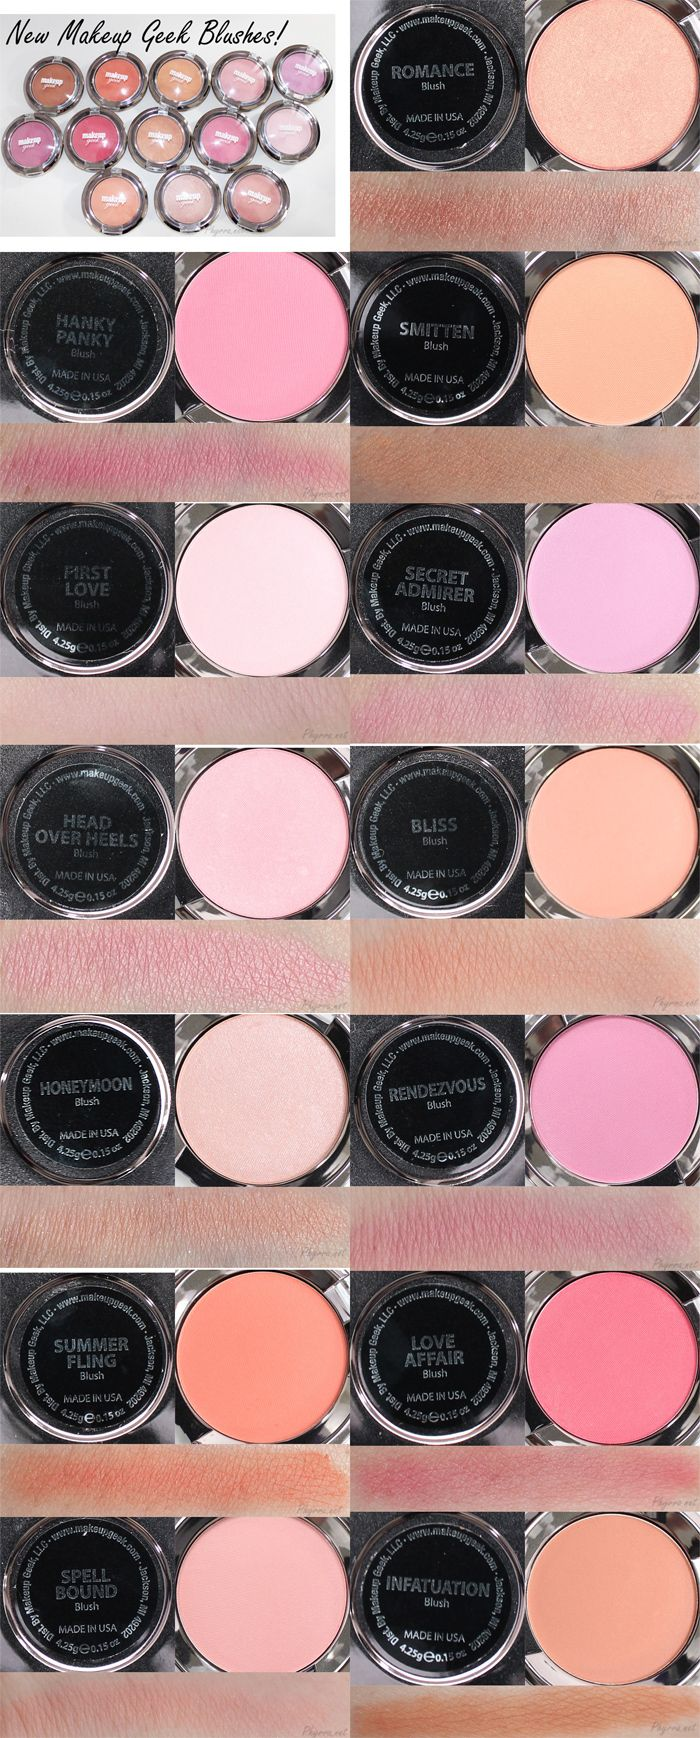 New Makeup Geek blush review by Phyrra!